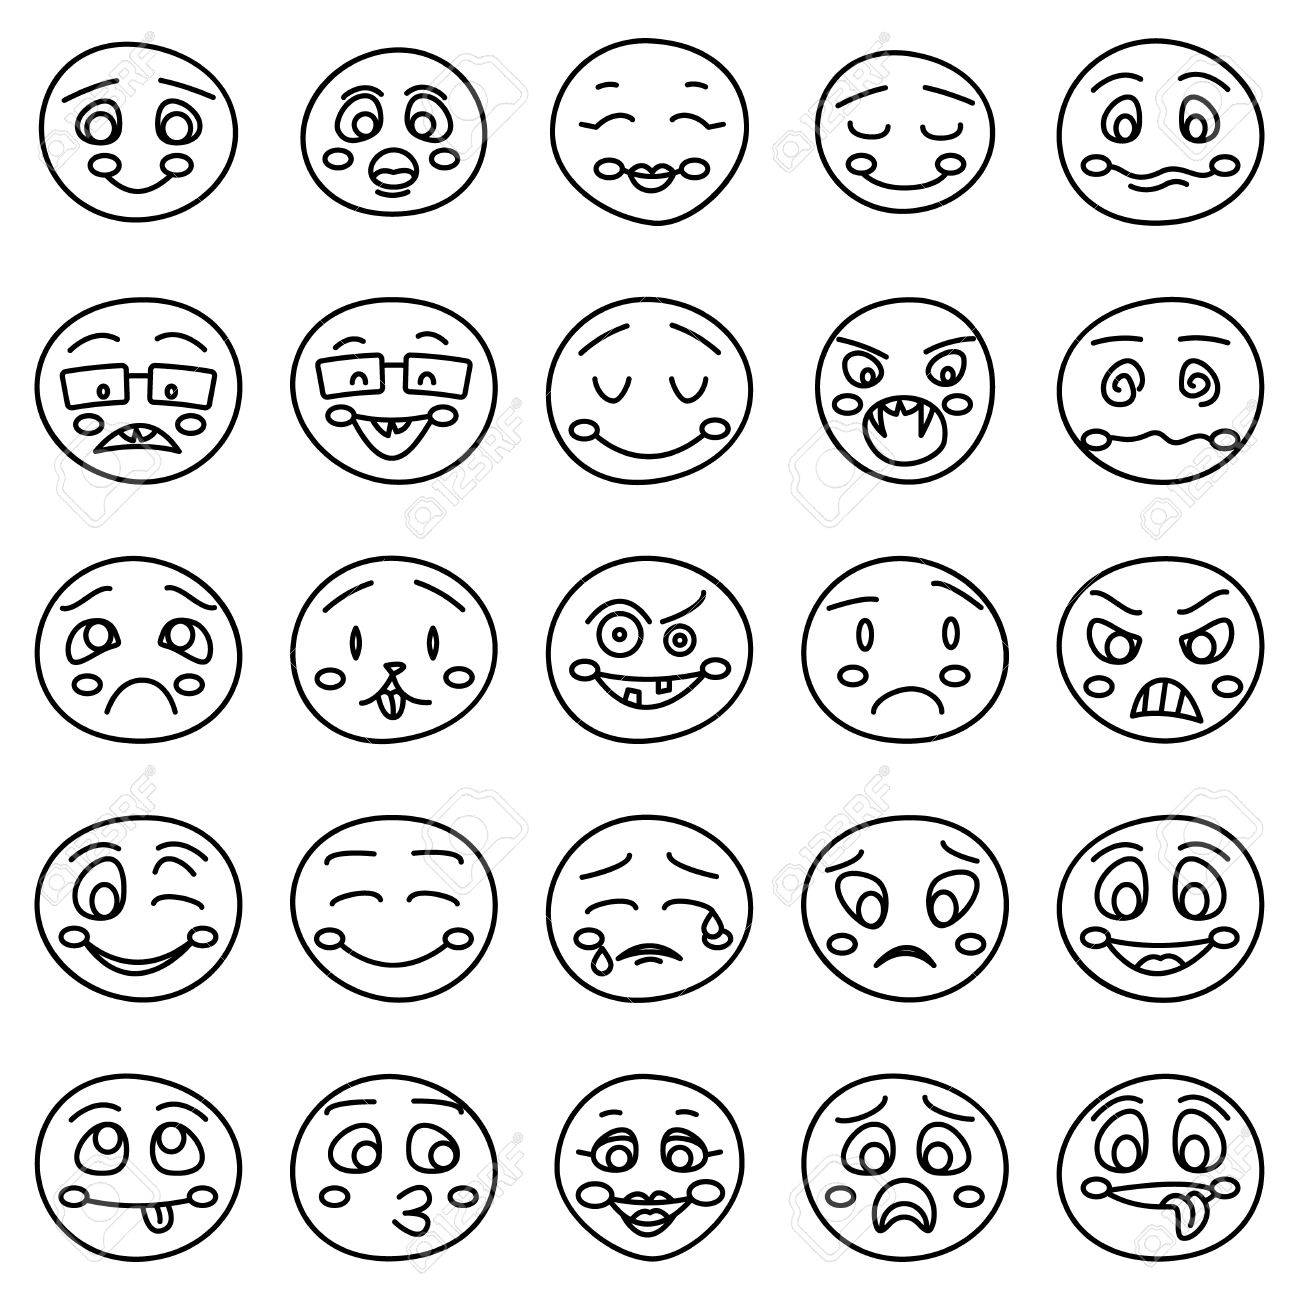 Smiley Face Drawing At Getdrawings